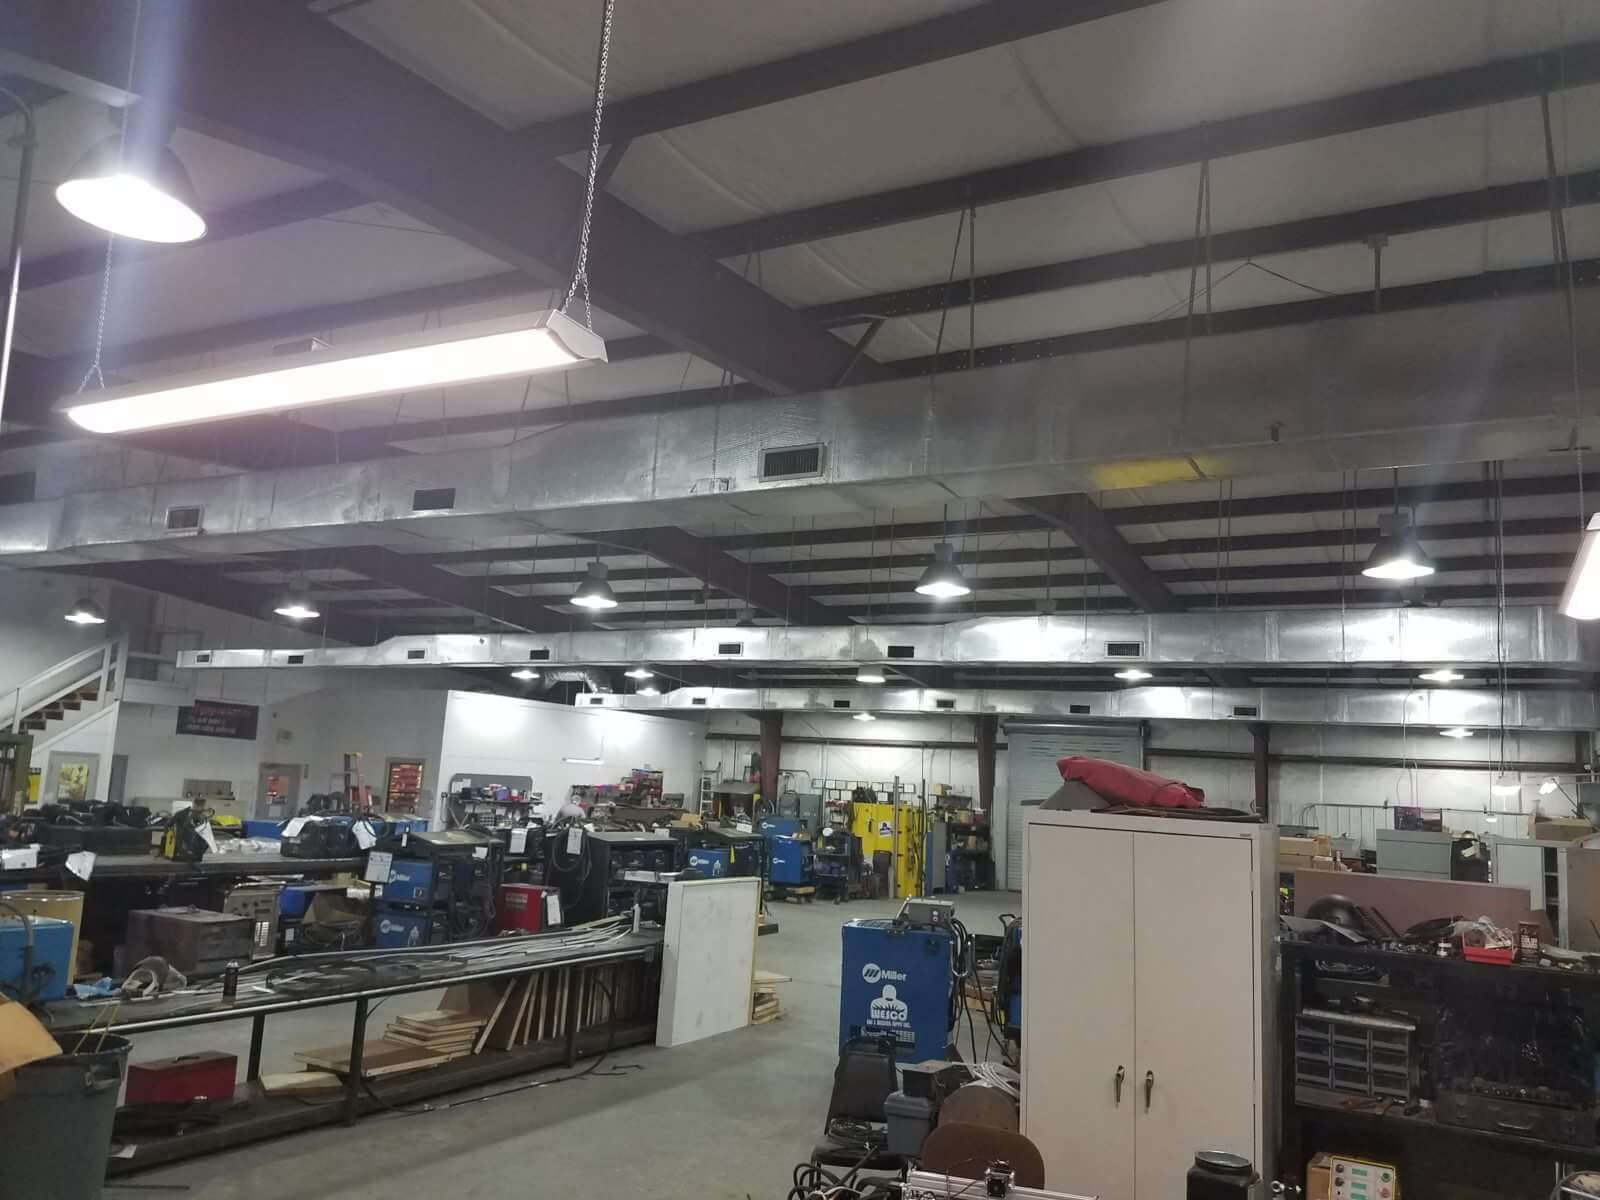 Wesco Gas & Welding Supply, Inc.: LED Fixture Replacement